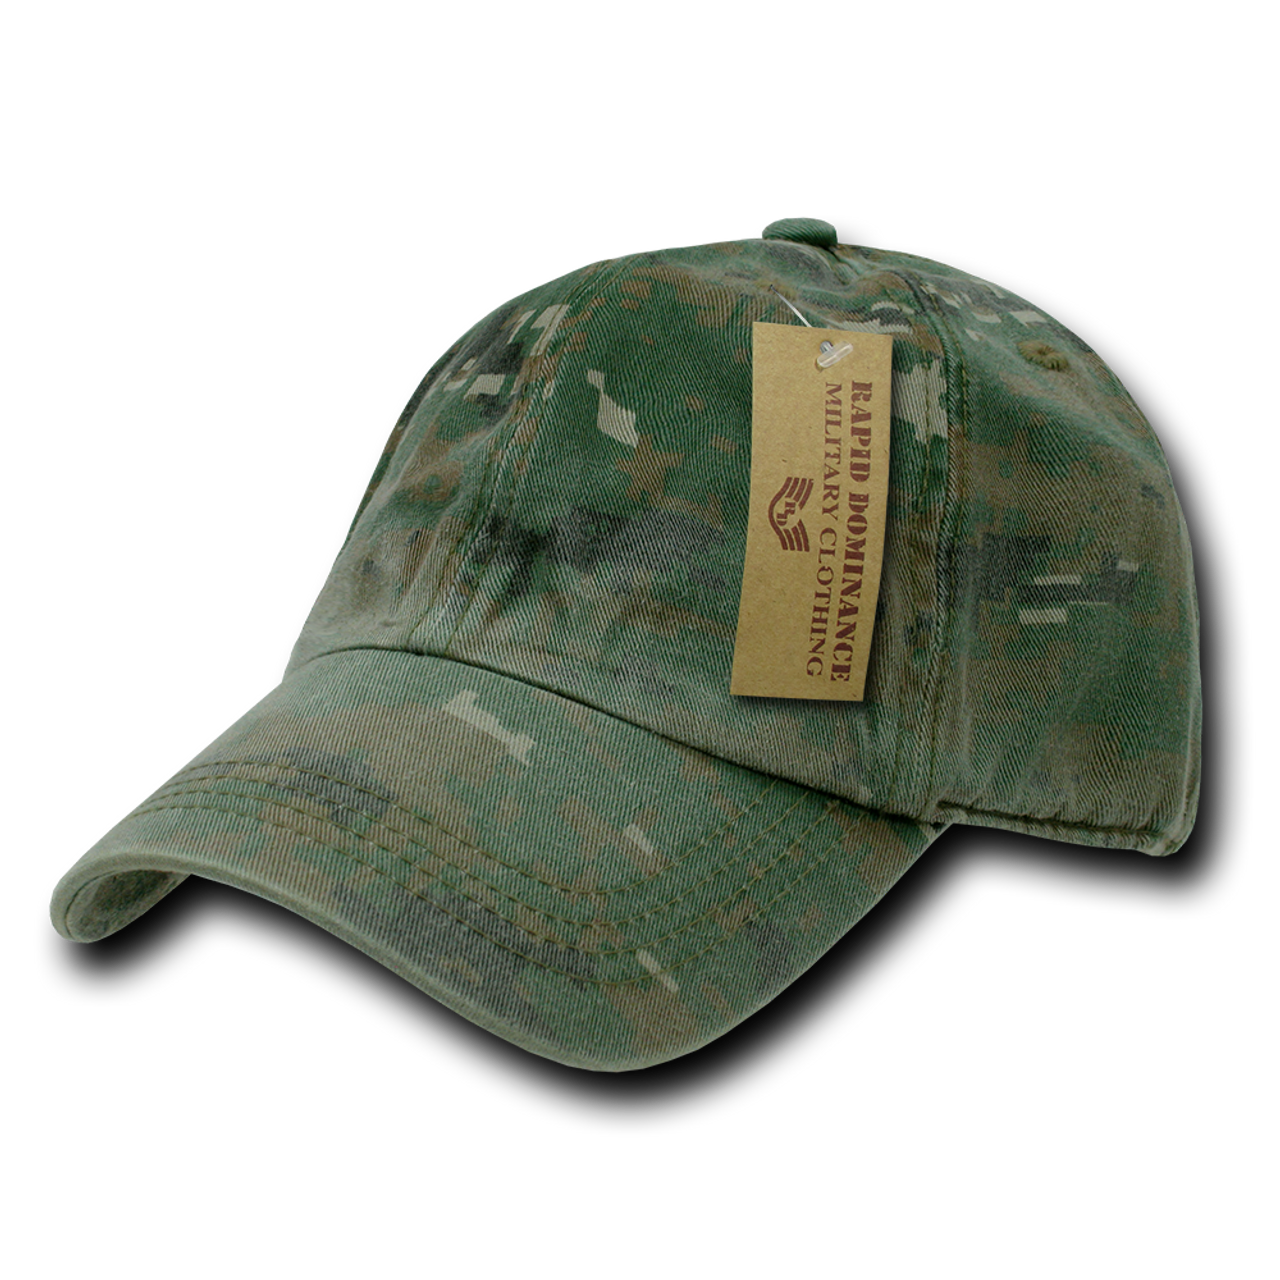 5acad56d7 ... R830 - Relaxed Cotton Polo Cap - Vintage Washed - Woodland Digital Camo  ...